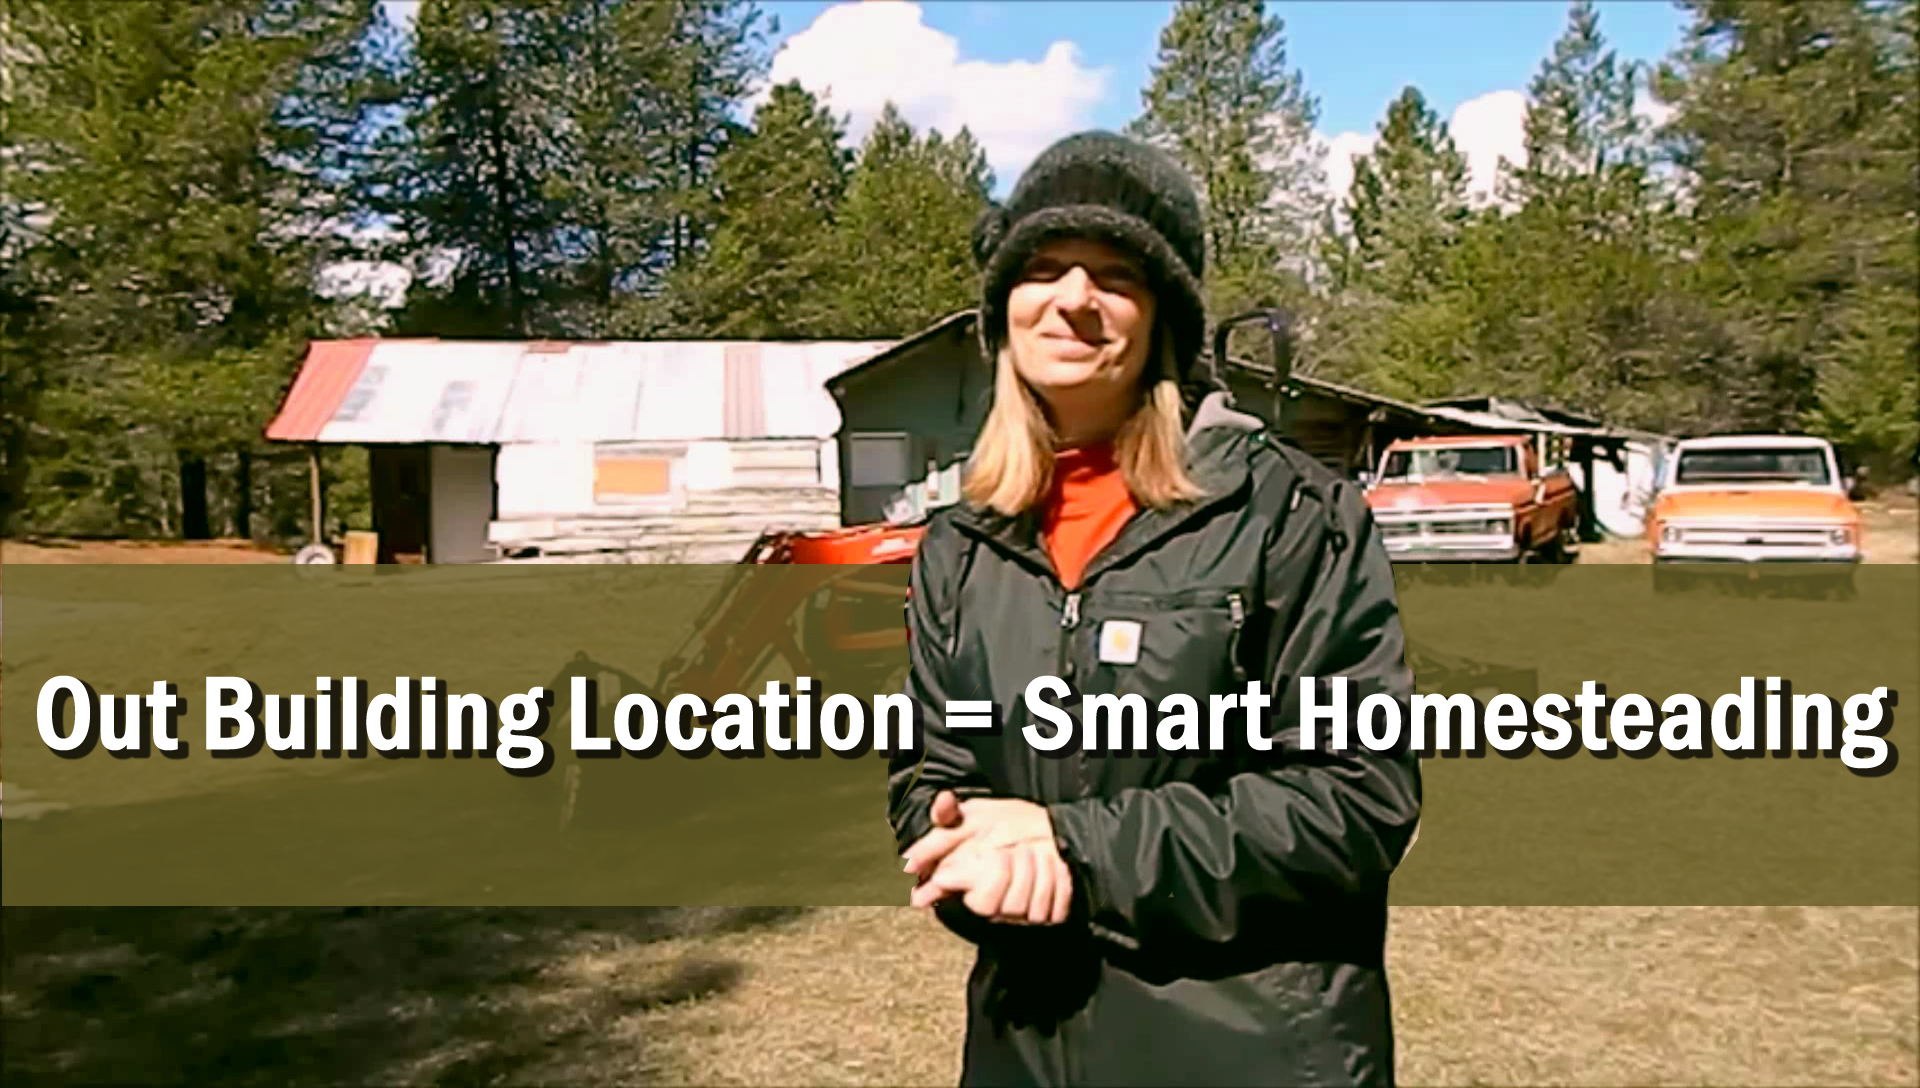 Out Building Location = Smart Homesteading